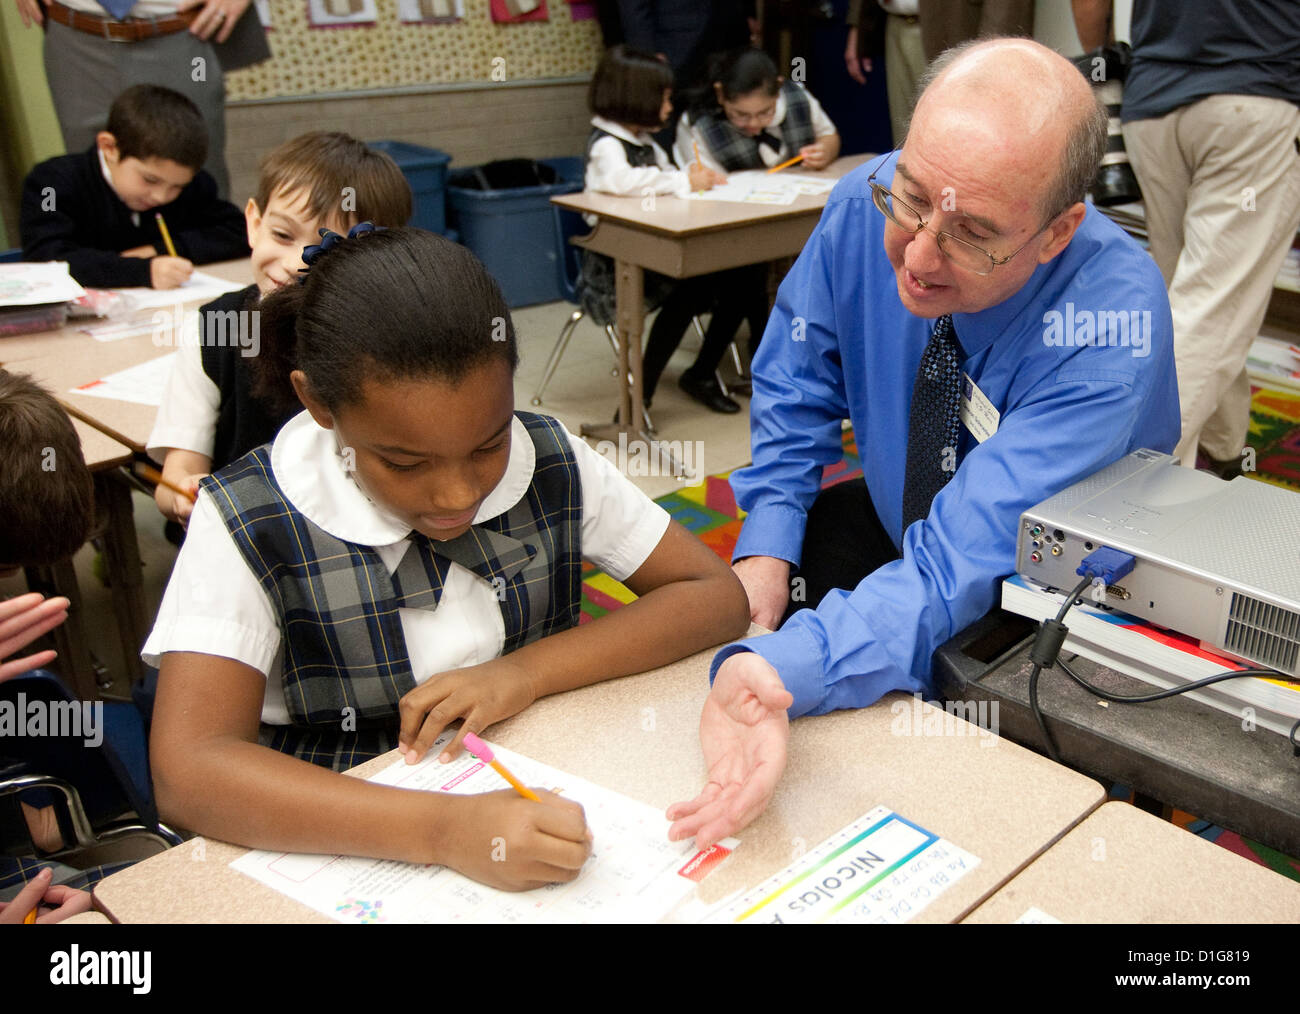 White male teacher assists African-American and Anglo students wearing uniform at private Catholic elementary school - Stock Image